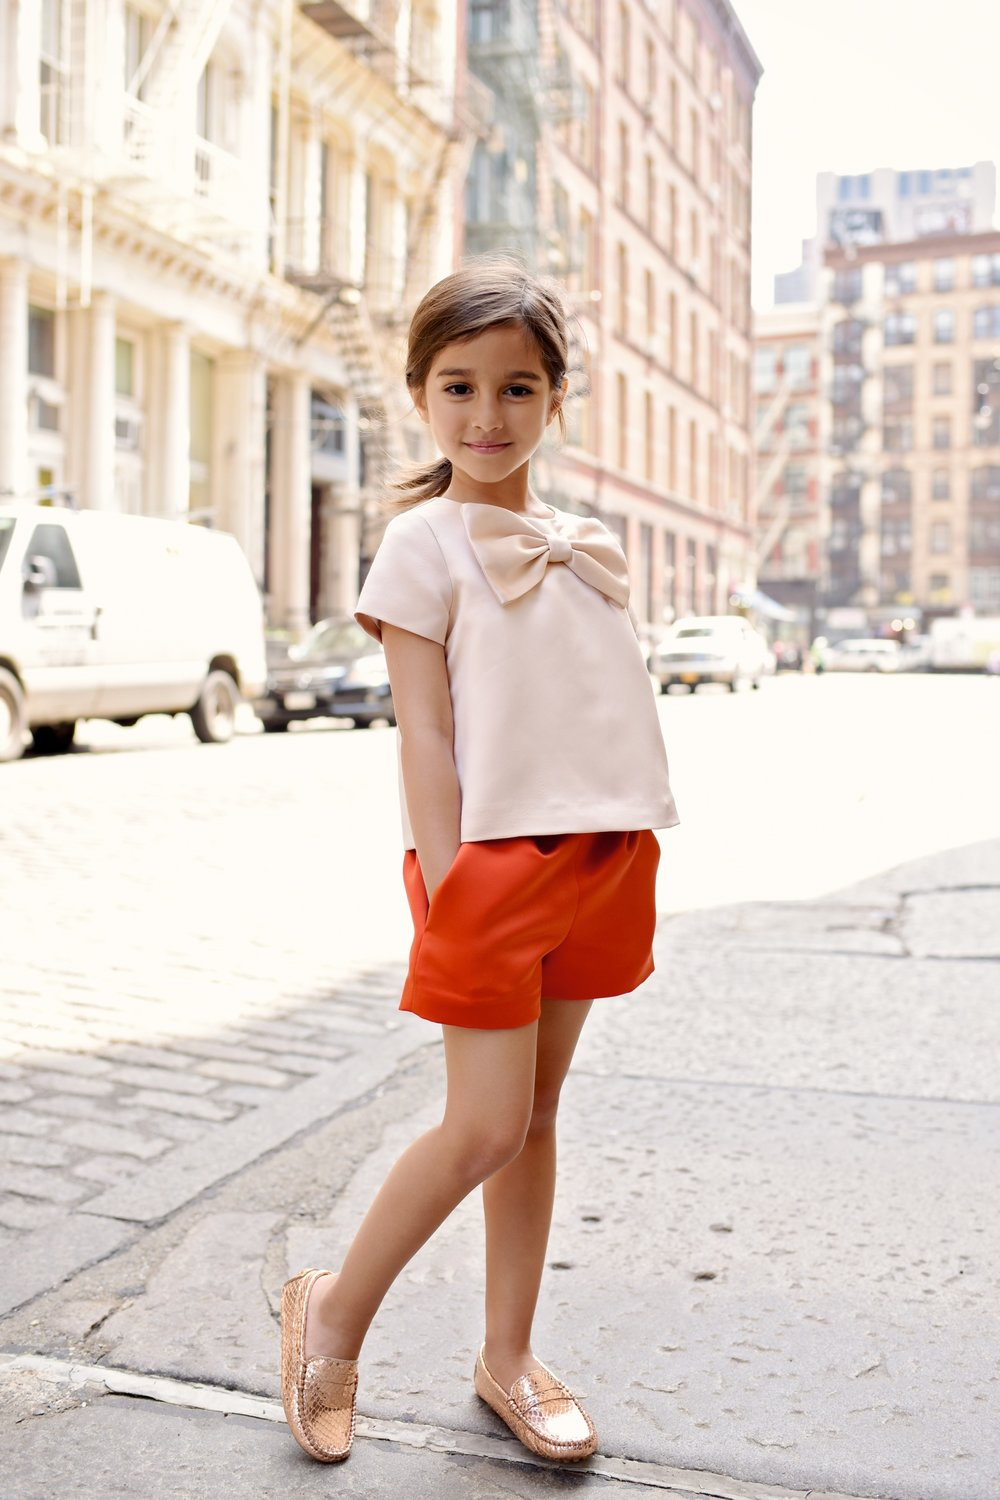 Enfant+Street+Style+by+Gina+Kim+Photography+Hucklebones-3.jpeg